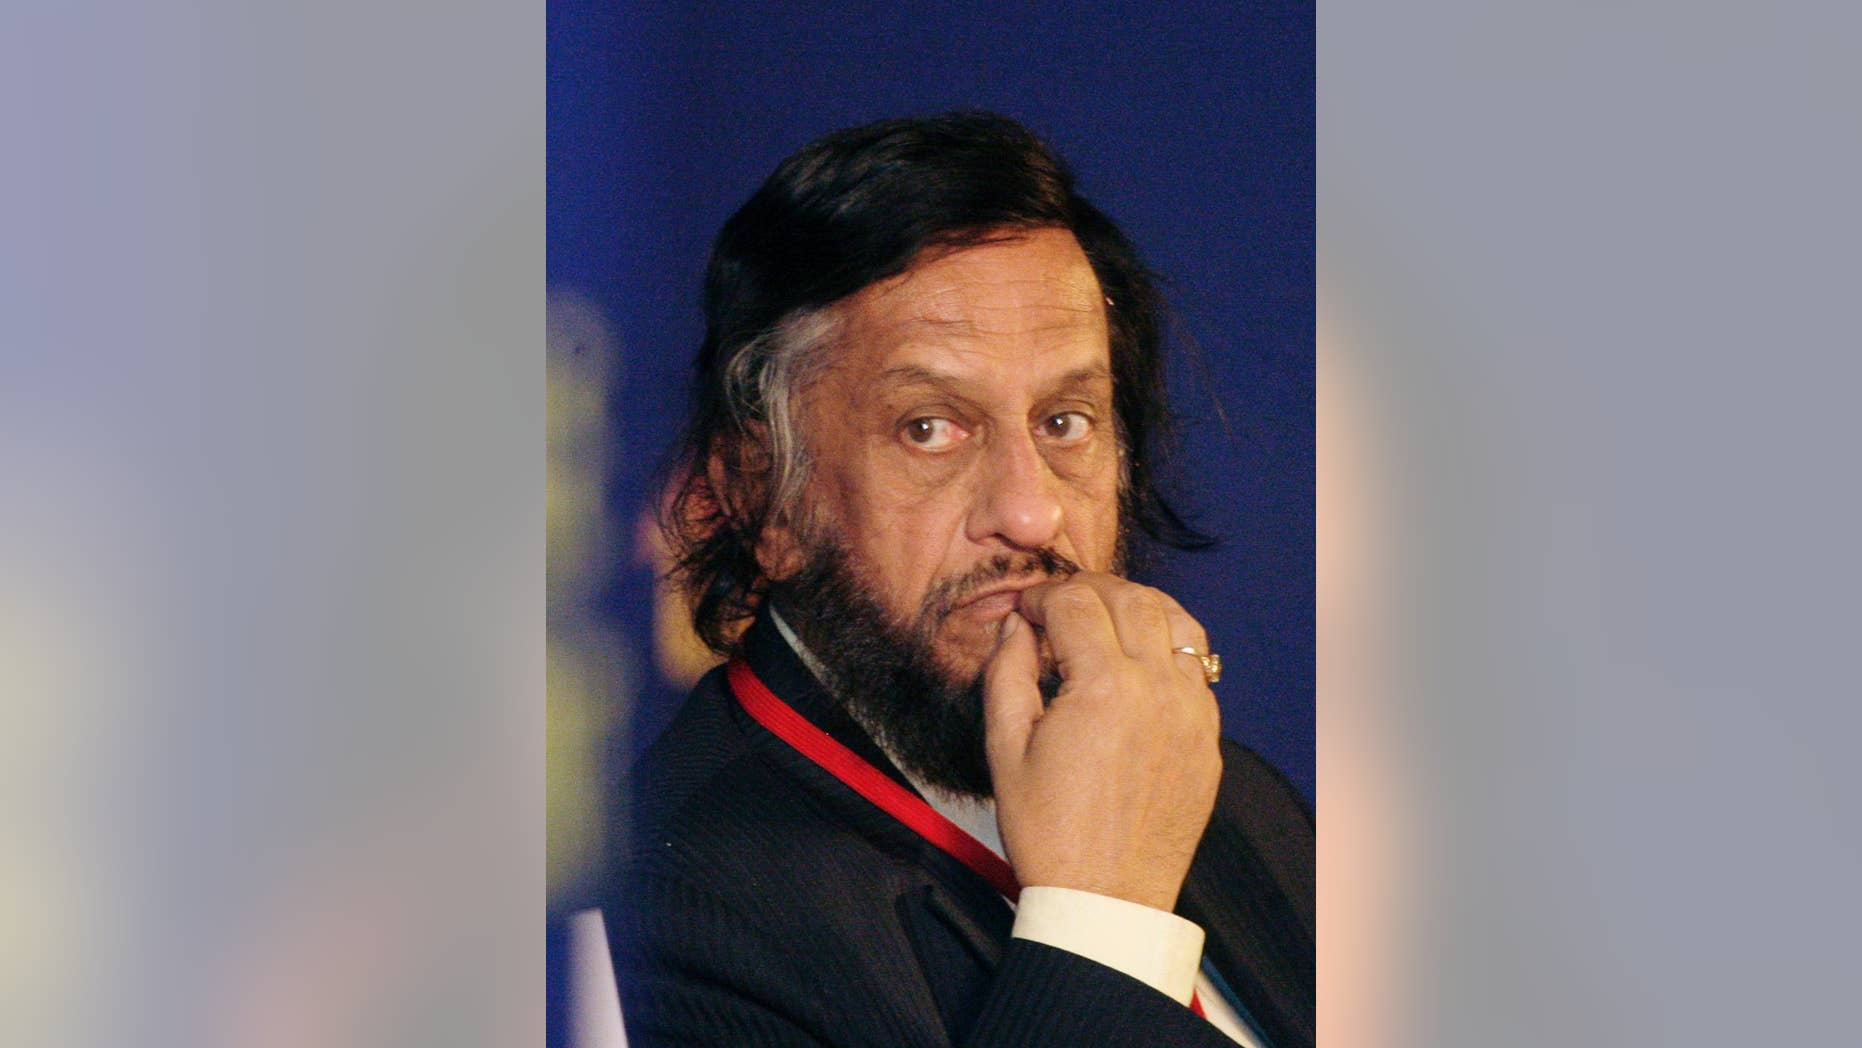 FILE- In this Feb. 6, 2010 file photo,Intergovernmental Panel on Climate Change Chairman Rajendra Pachauri listens to a speaker at the Delhi Sustainable Development Summit in New Delhi, India. A court in India's capital says there's enough evidence in a stalking and sexual harassment case for a former chairman of the U.N.'s climate body, Rajendra Pachauri, to stand trial. (AP Photo/Gurinder Osan, file)